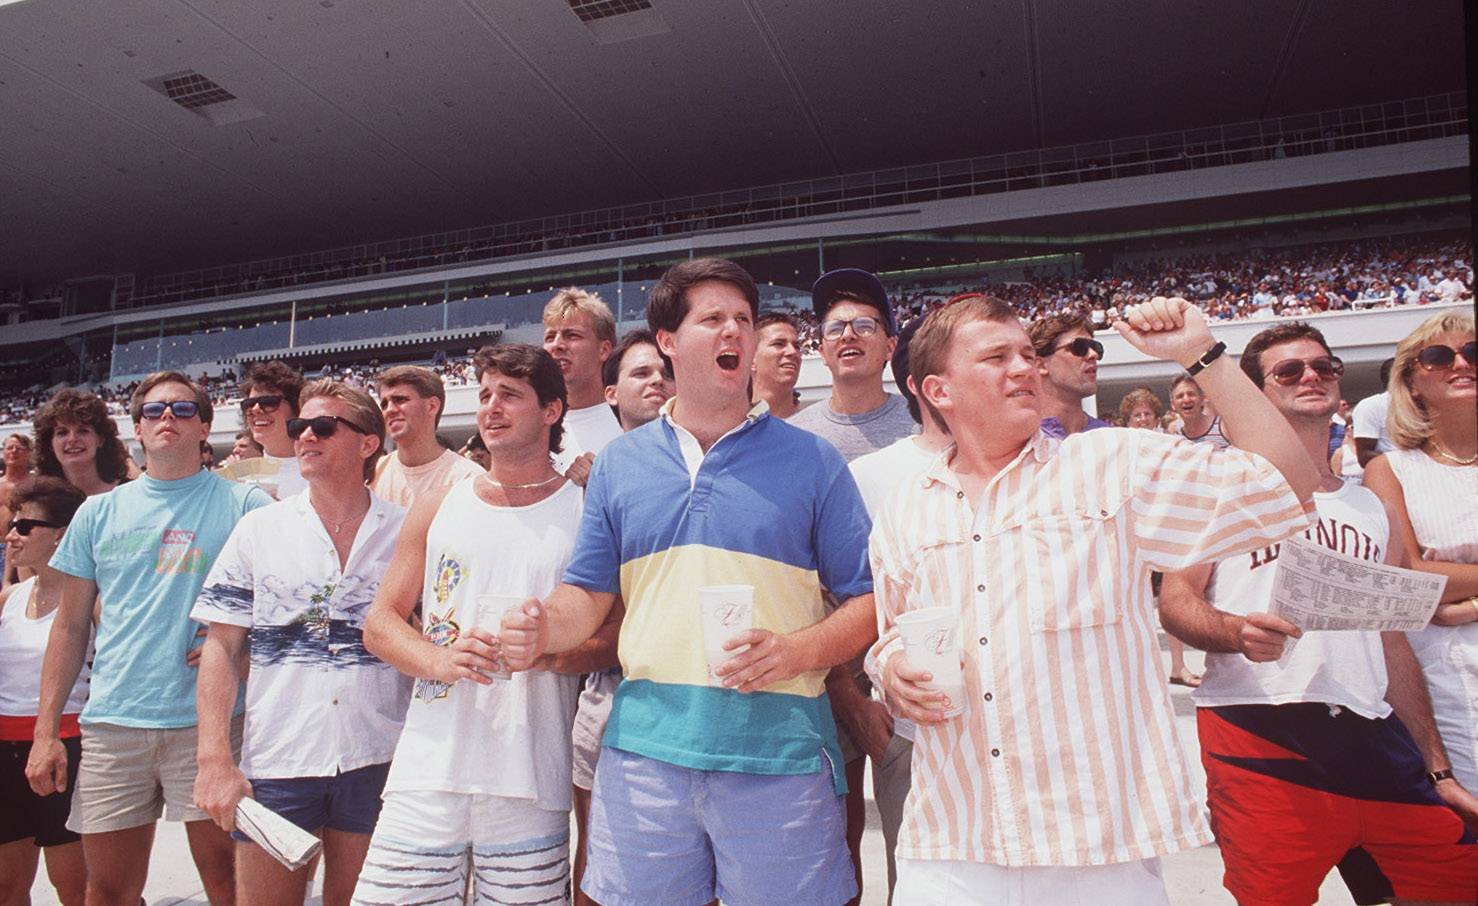 Fans cheer for their favorite at grand opening new Arlington International Racecourse  on July 1, 1989.